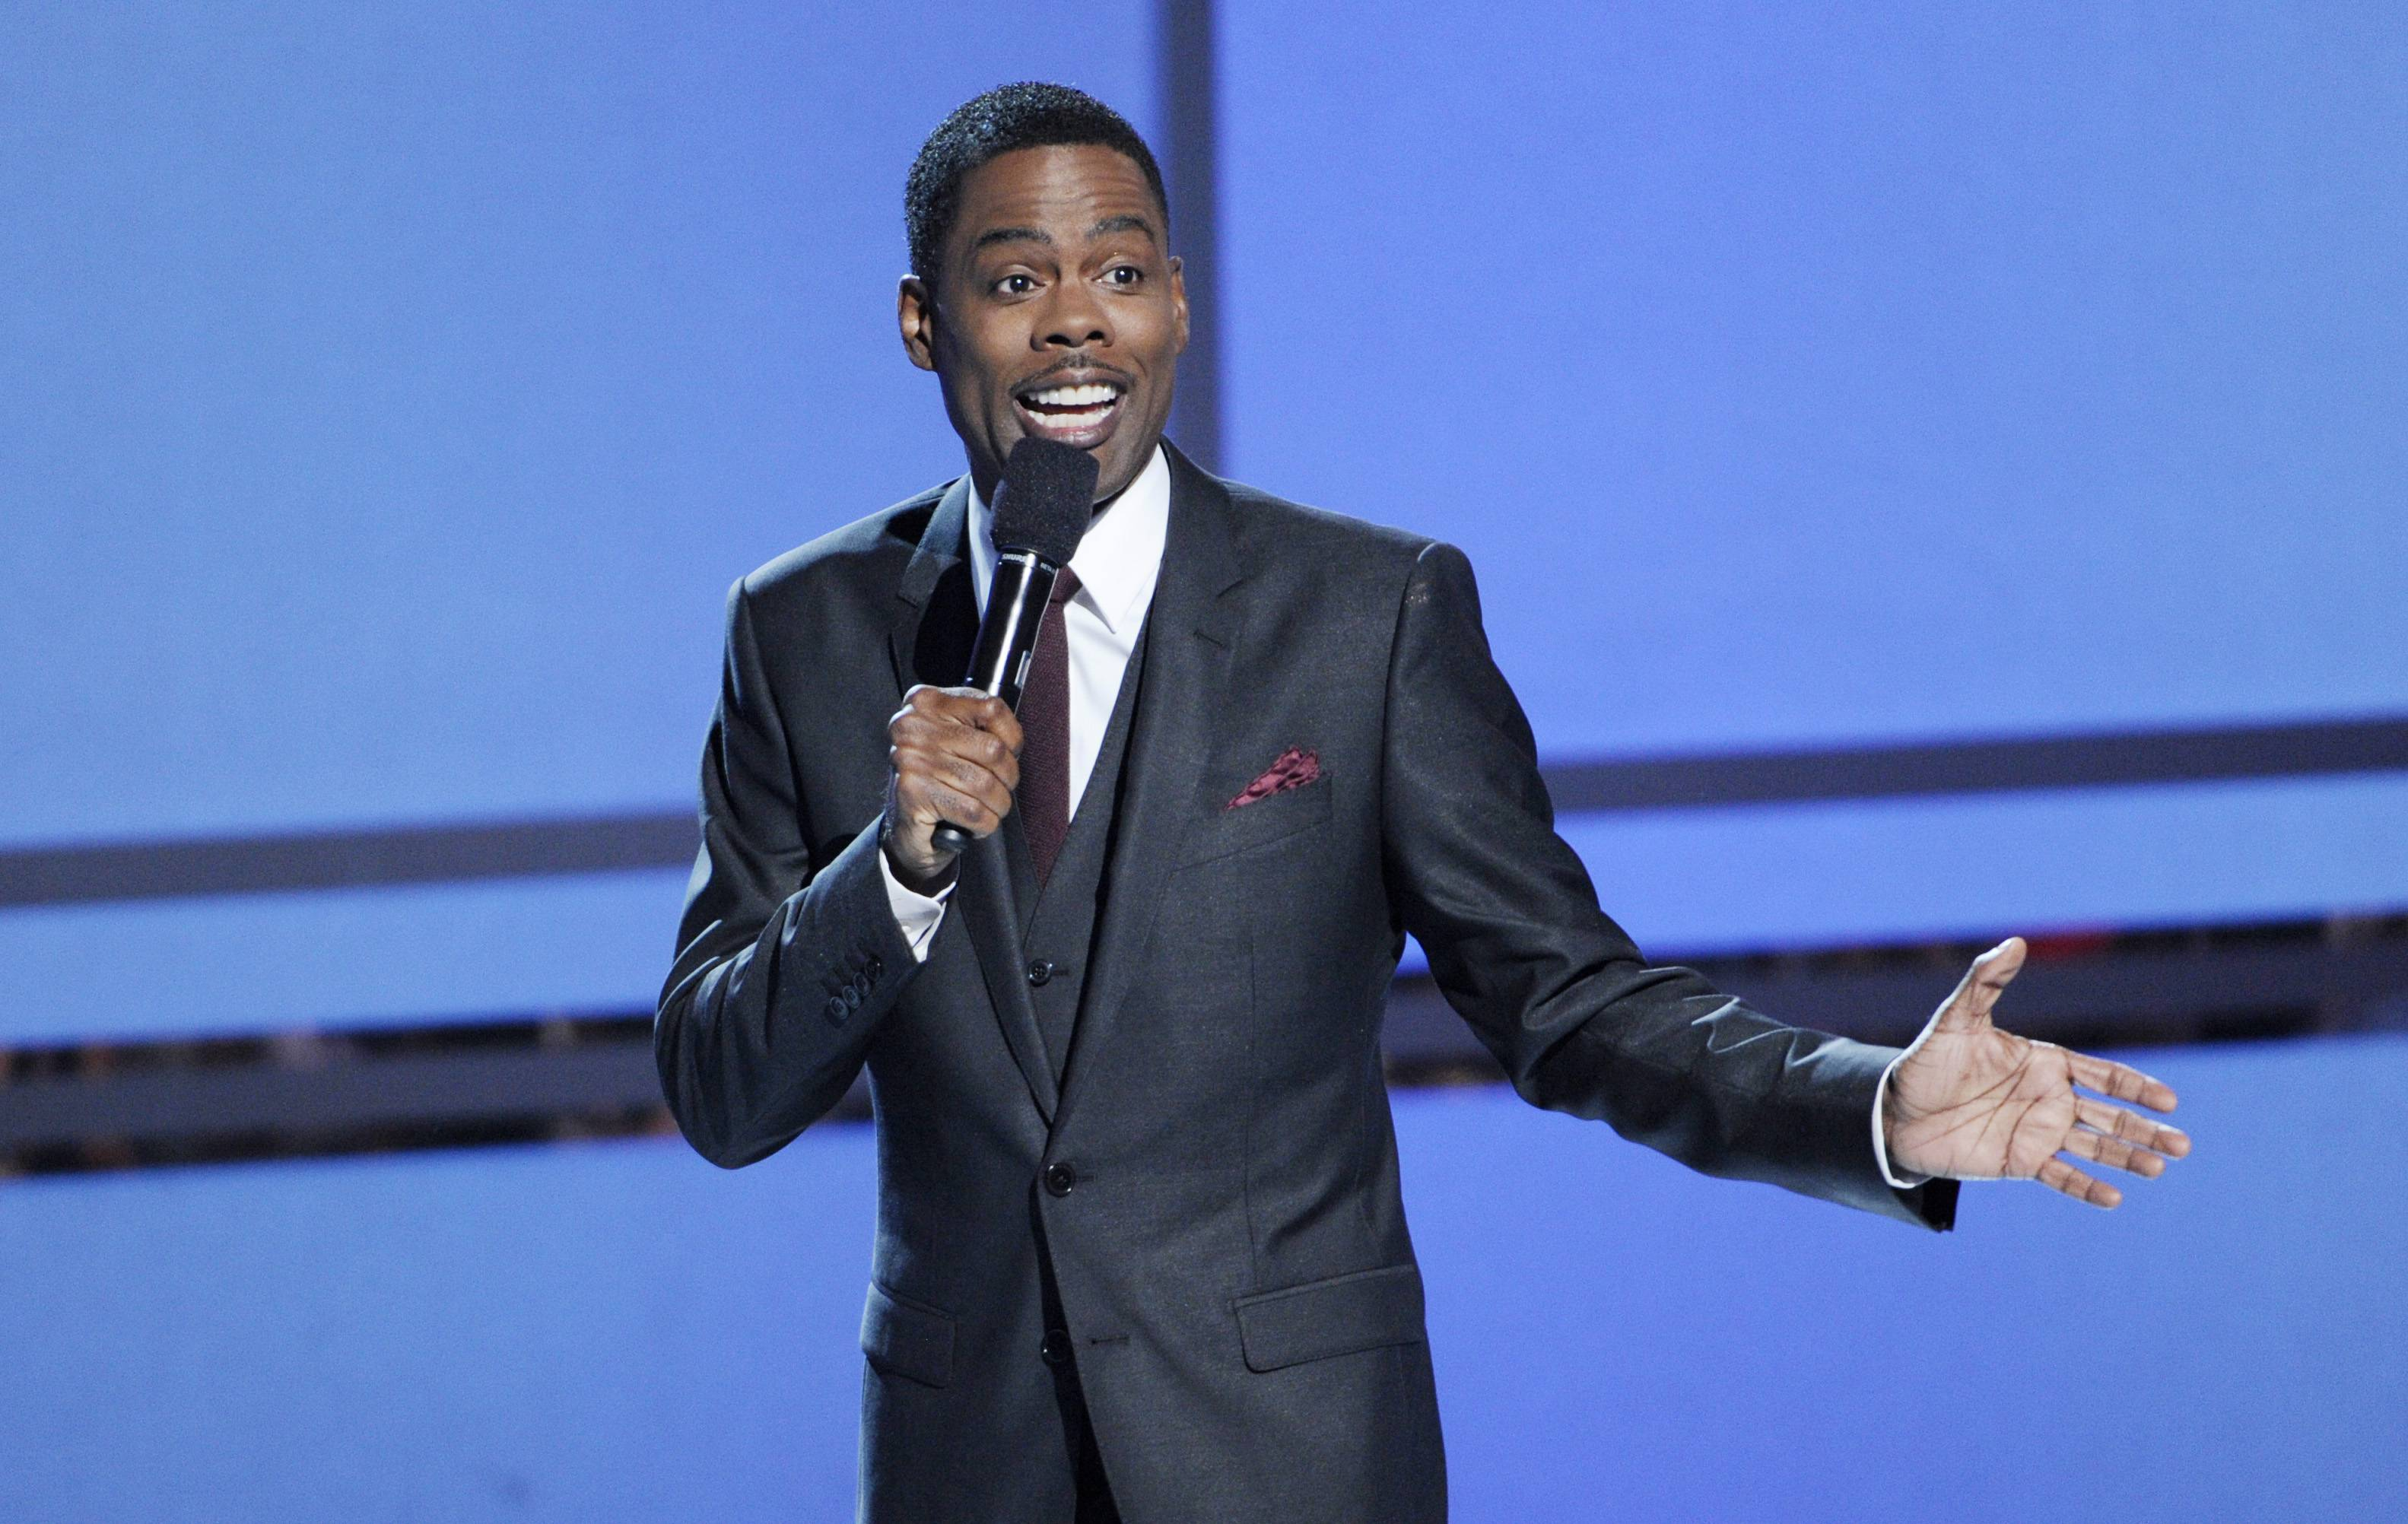 Chris Rock hosted the four-hour BET Awards at the Nokia Theatre on Sunday.